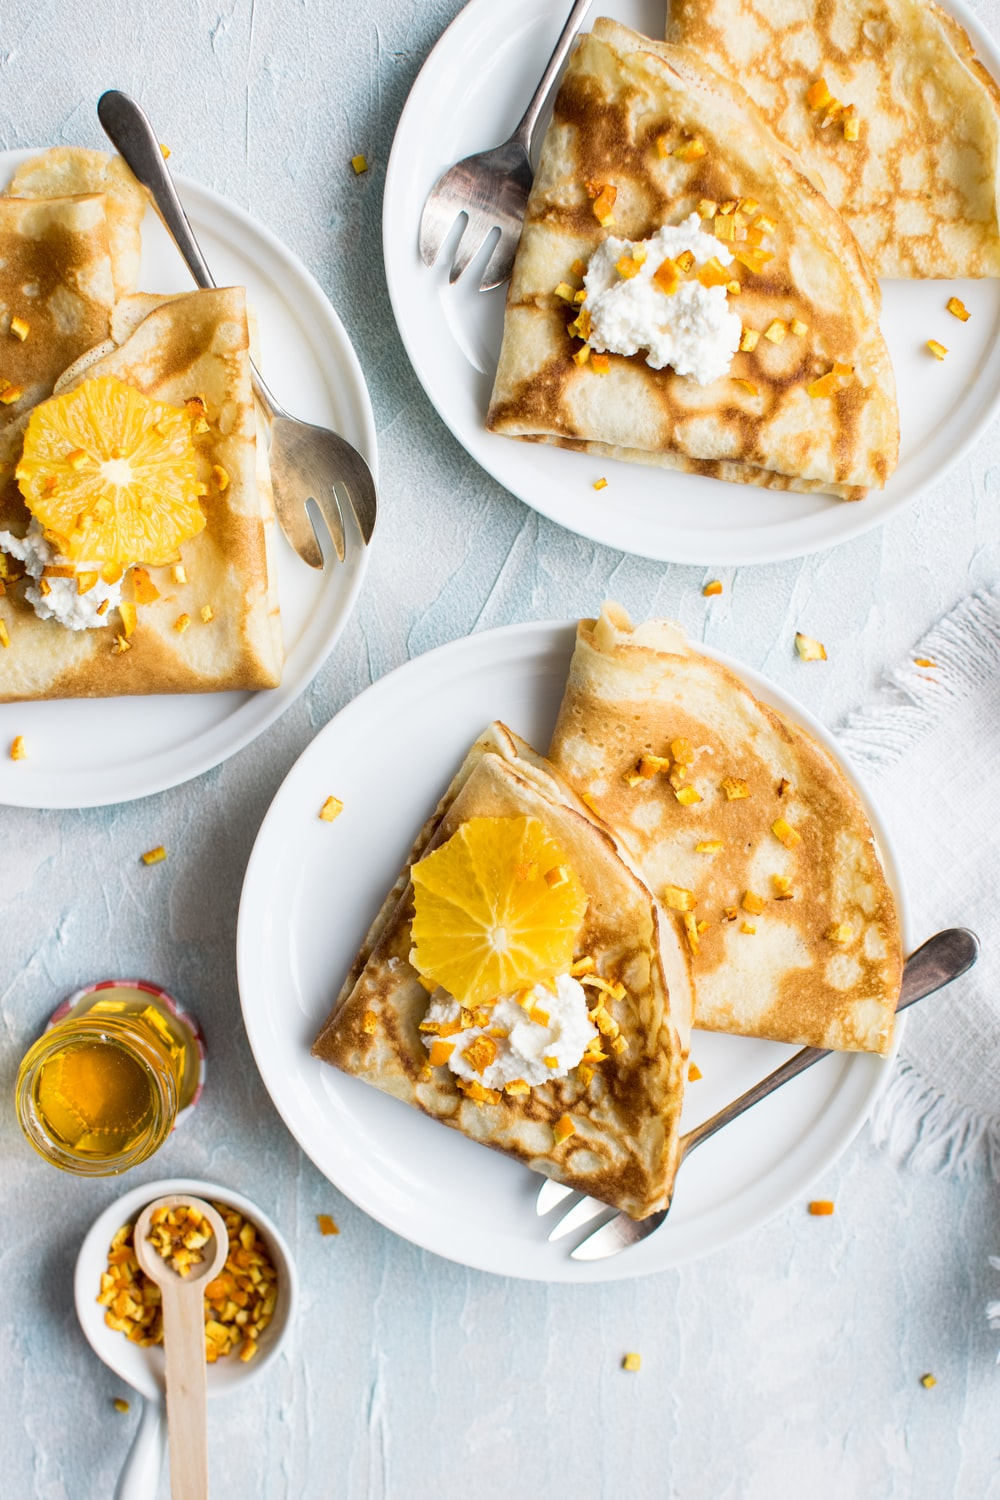 flat-lay photography of pancake with icing